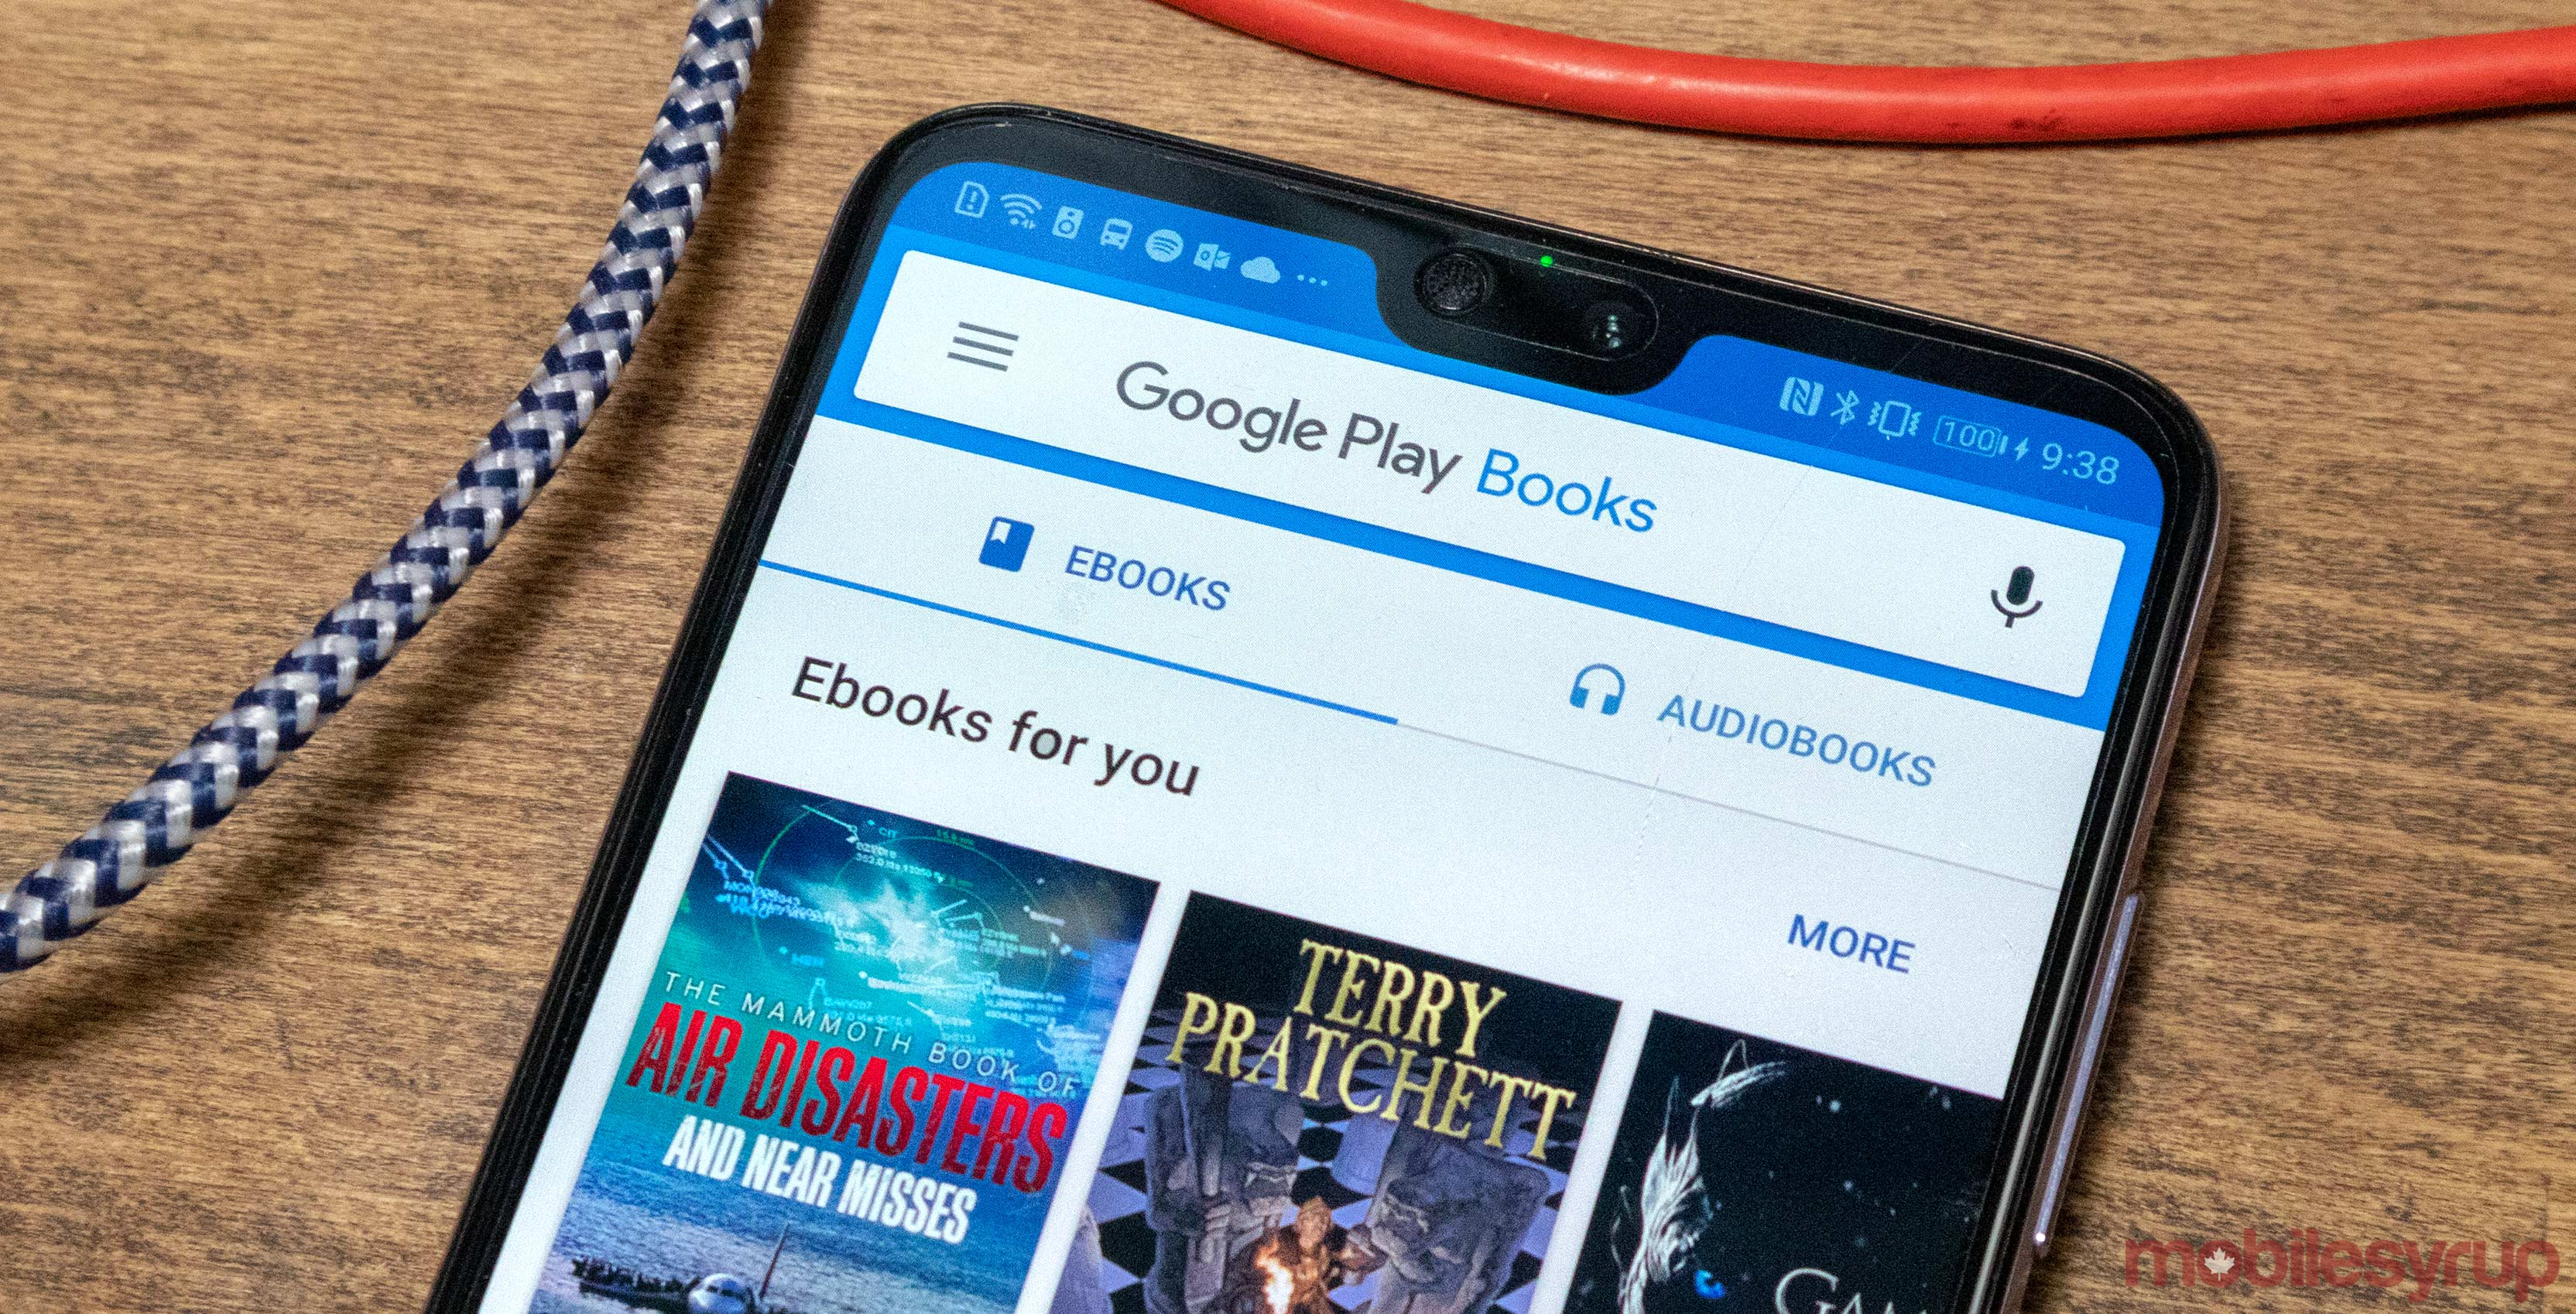 Google Play Books redesign rolling out to more people